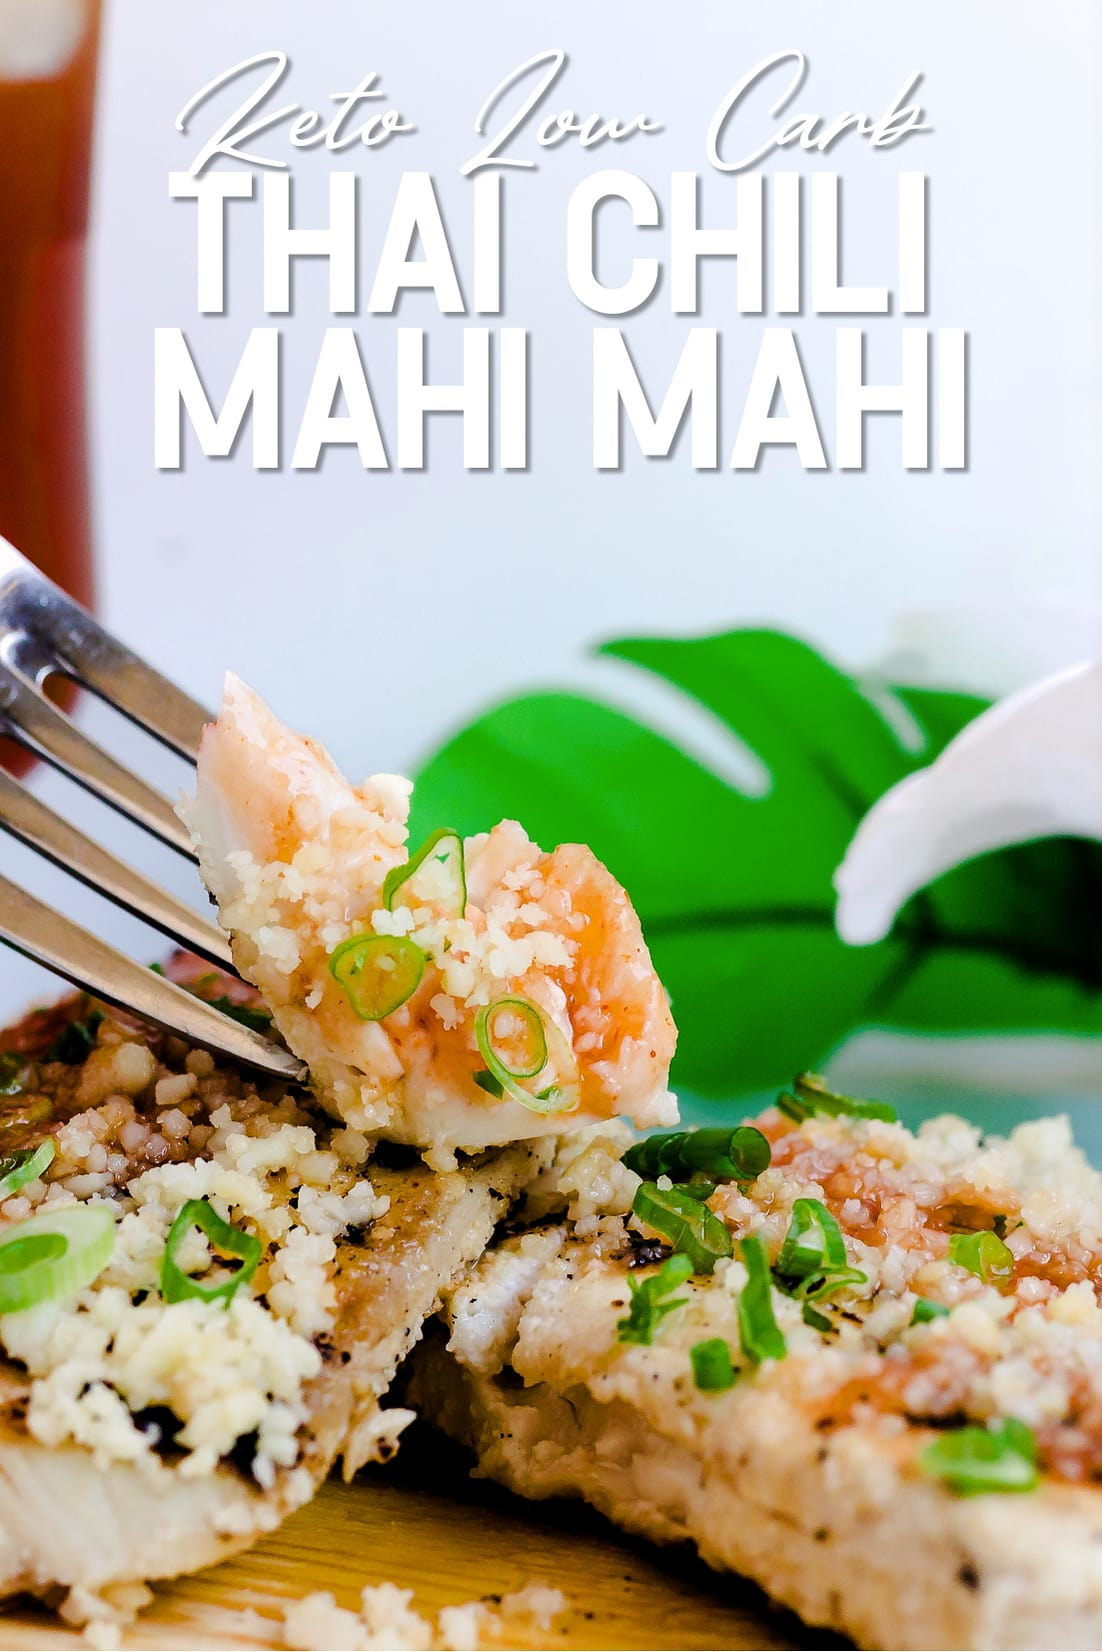 A piece of Thai Chili Mahi Mahi being held up by fork